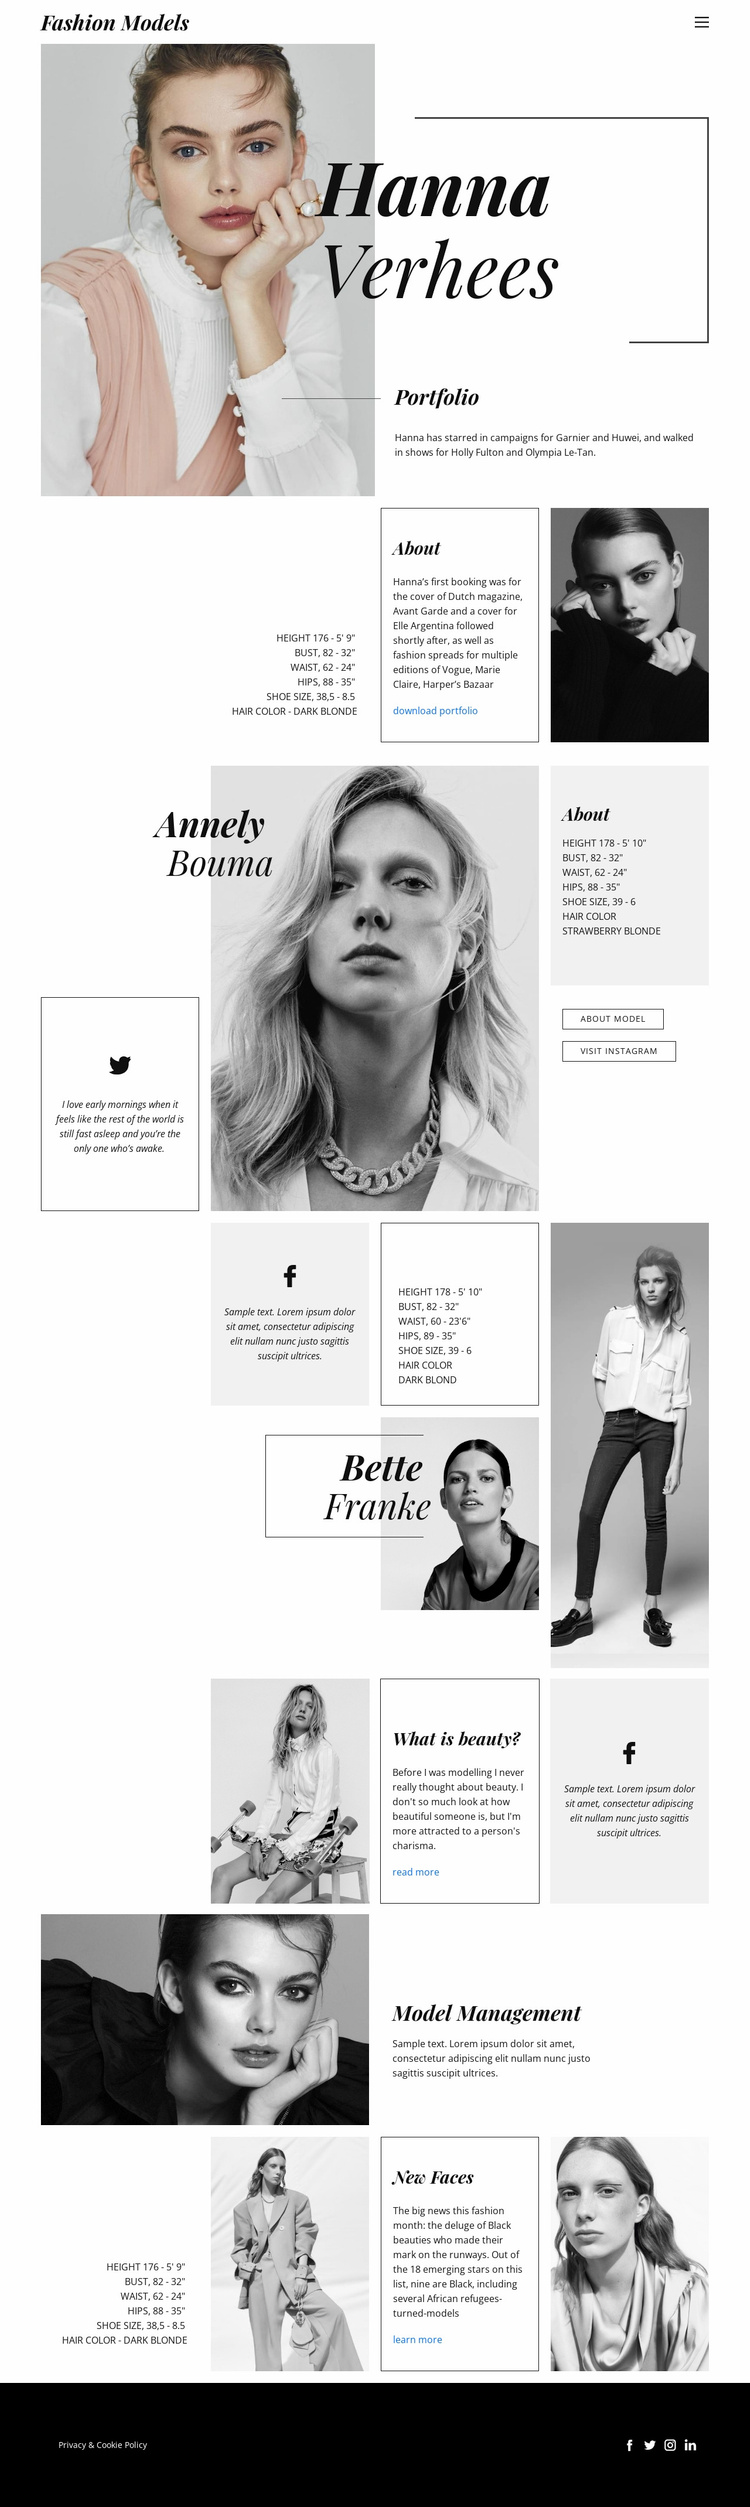 Hanna Verhees Blog Website Template